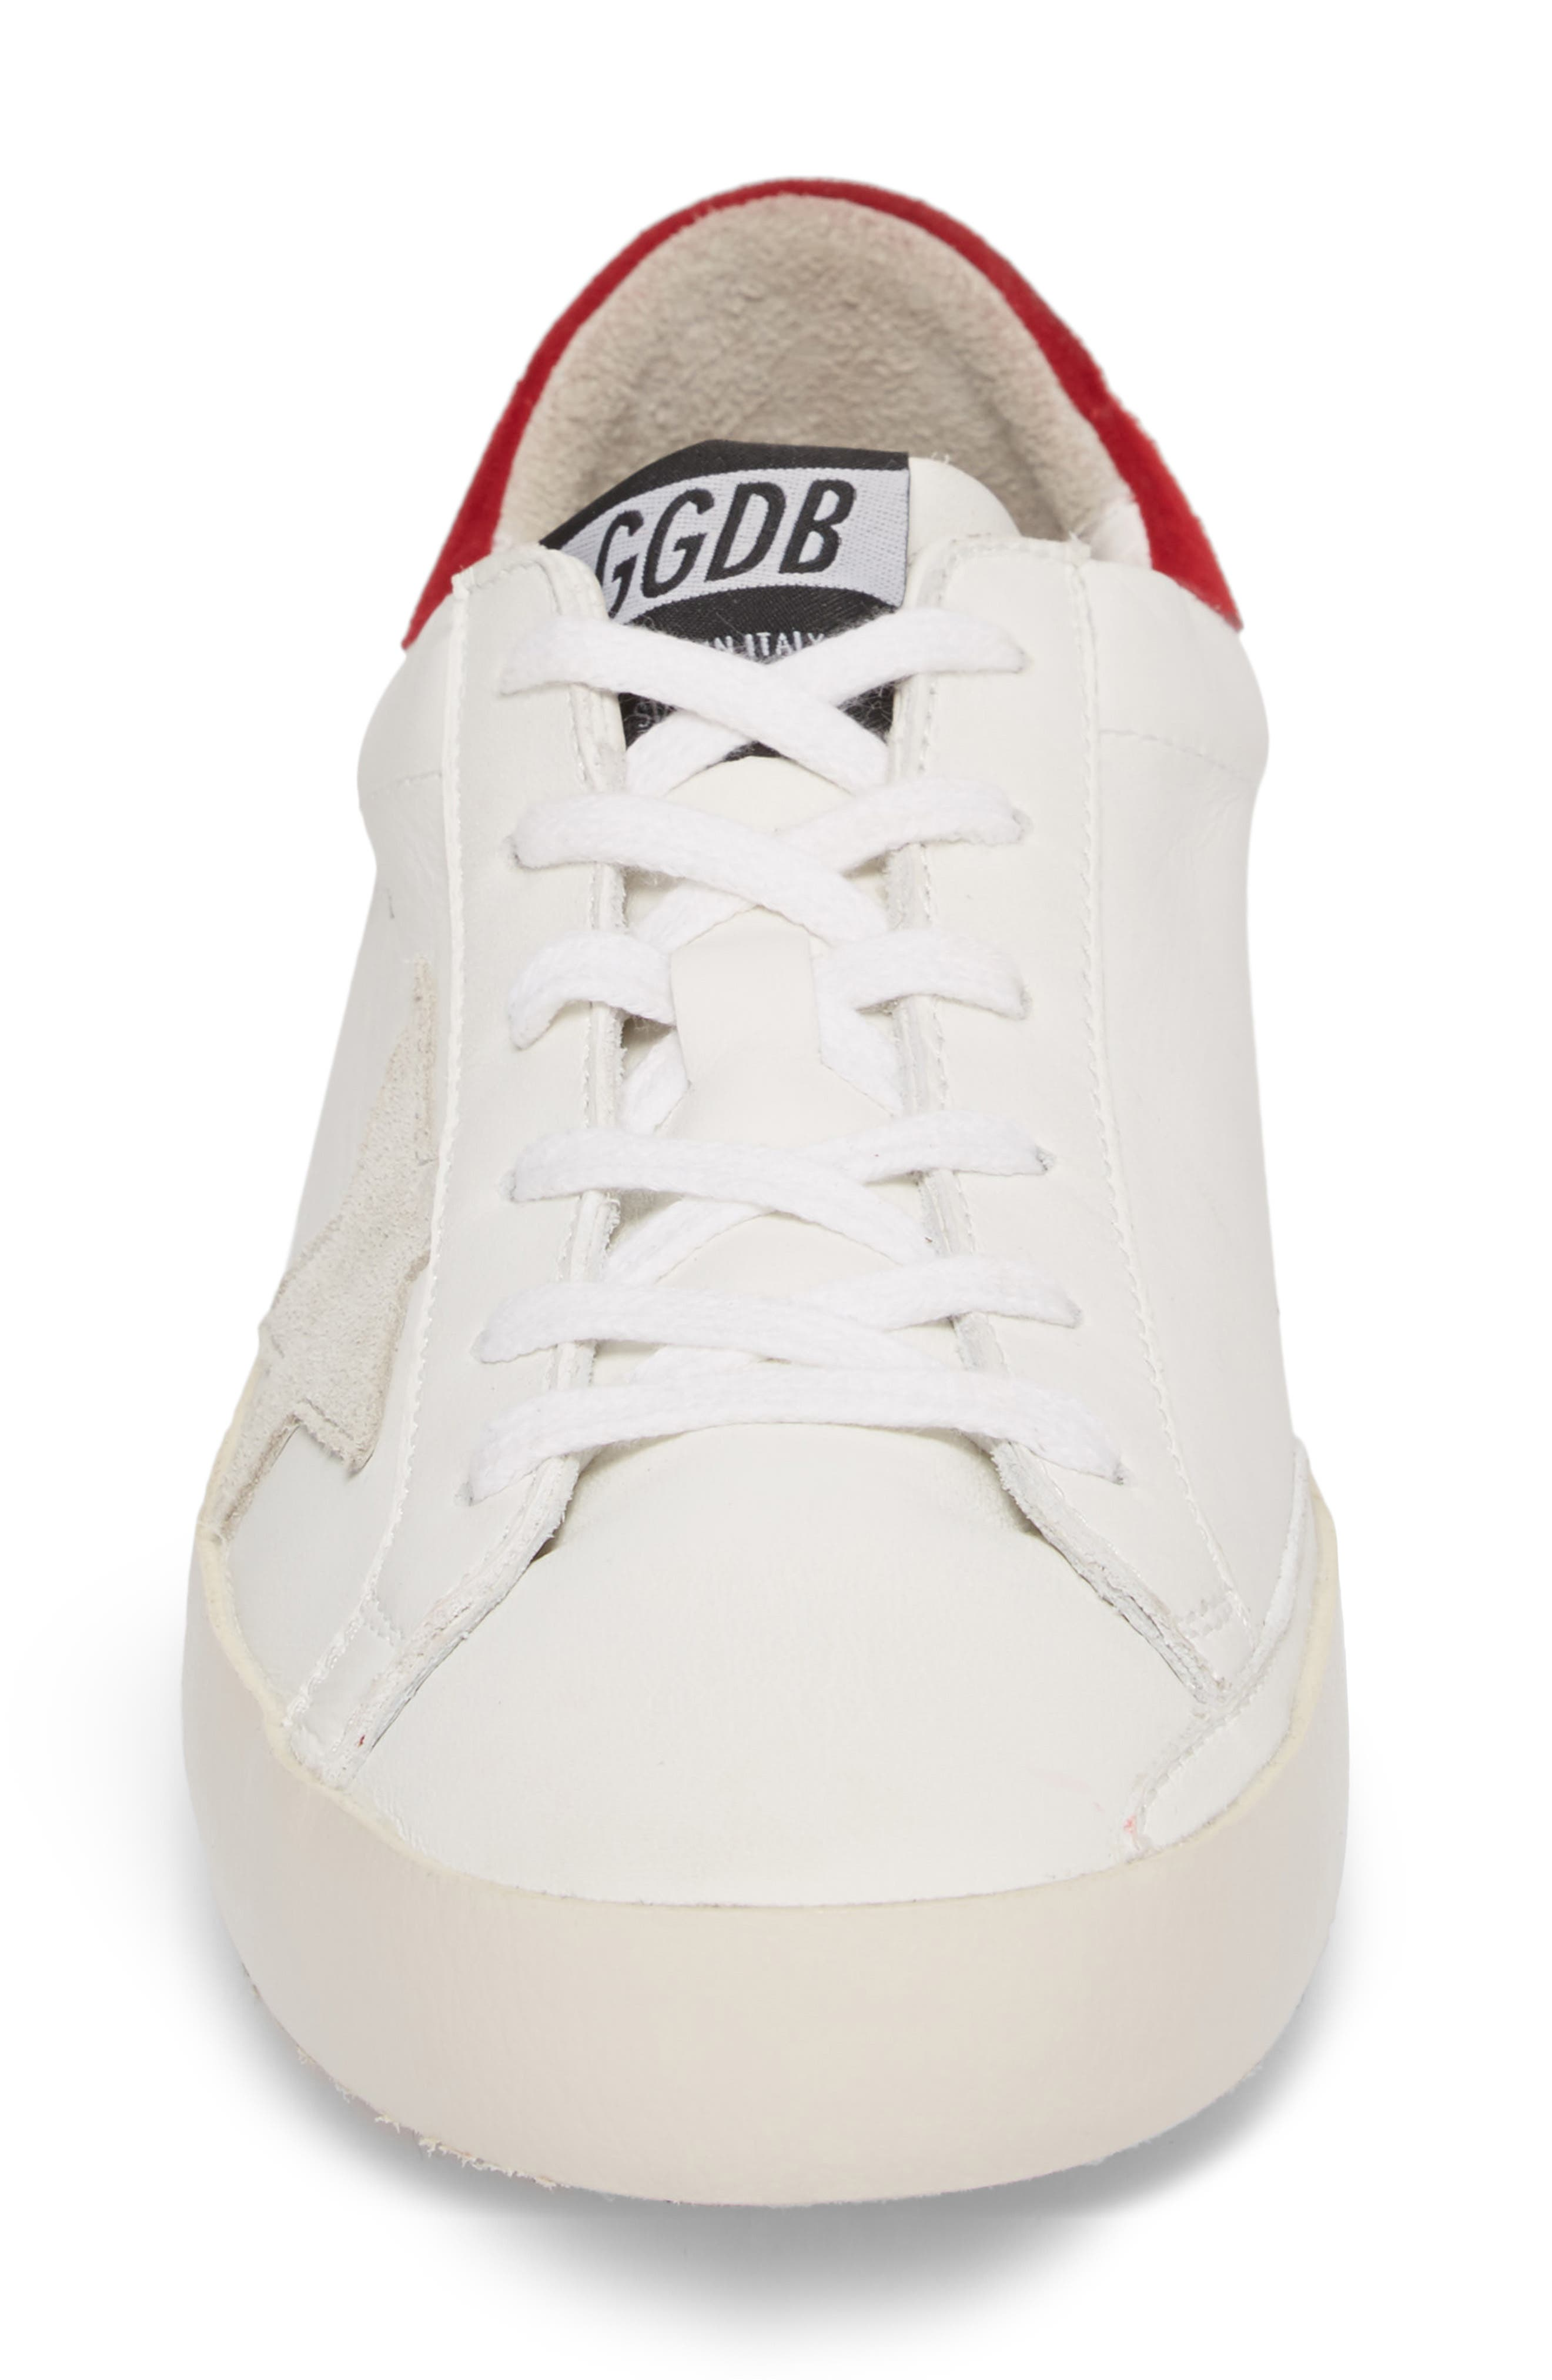 Superstar Low Top Sneaker,                             Alternate thumbnail 4, color,                             White/ Bordeaux